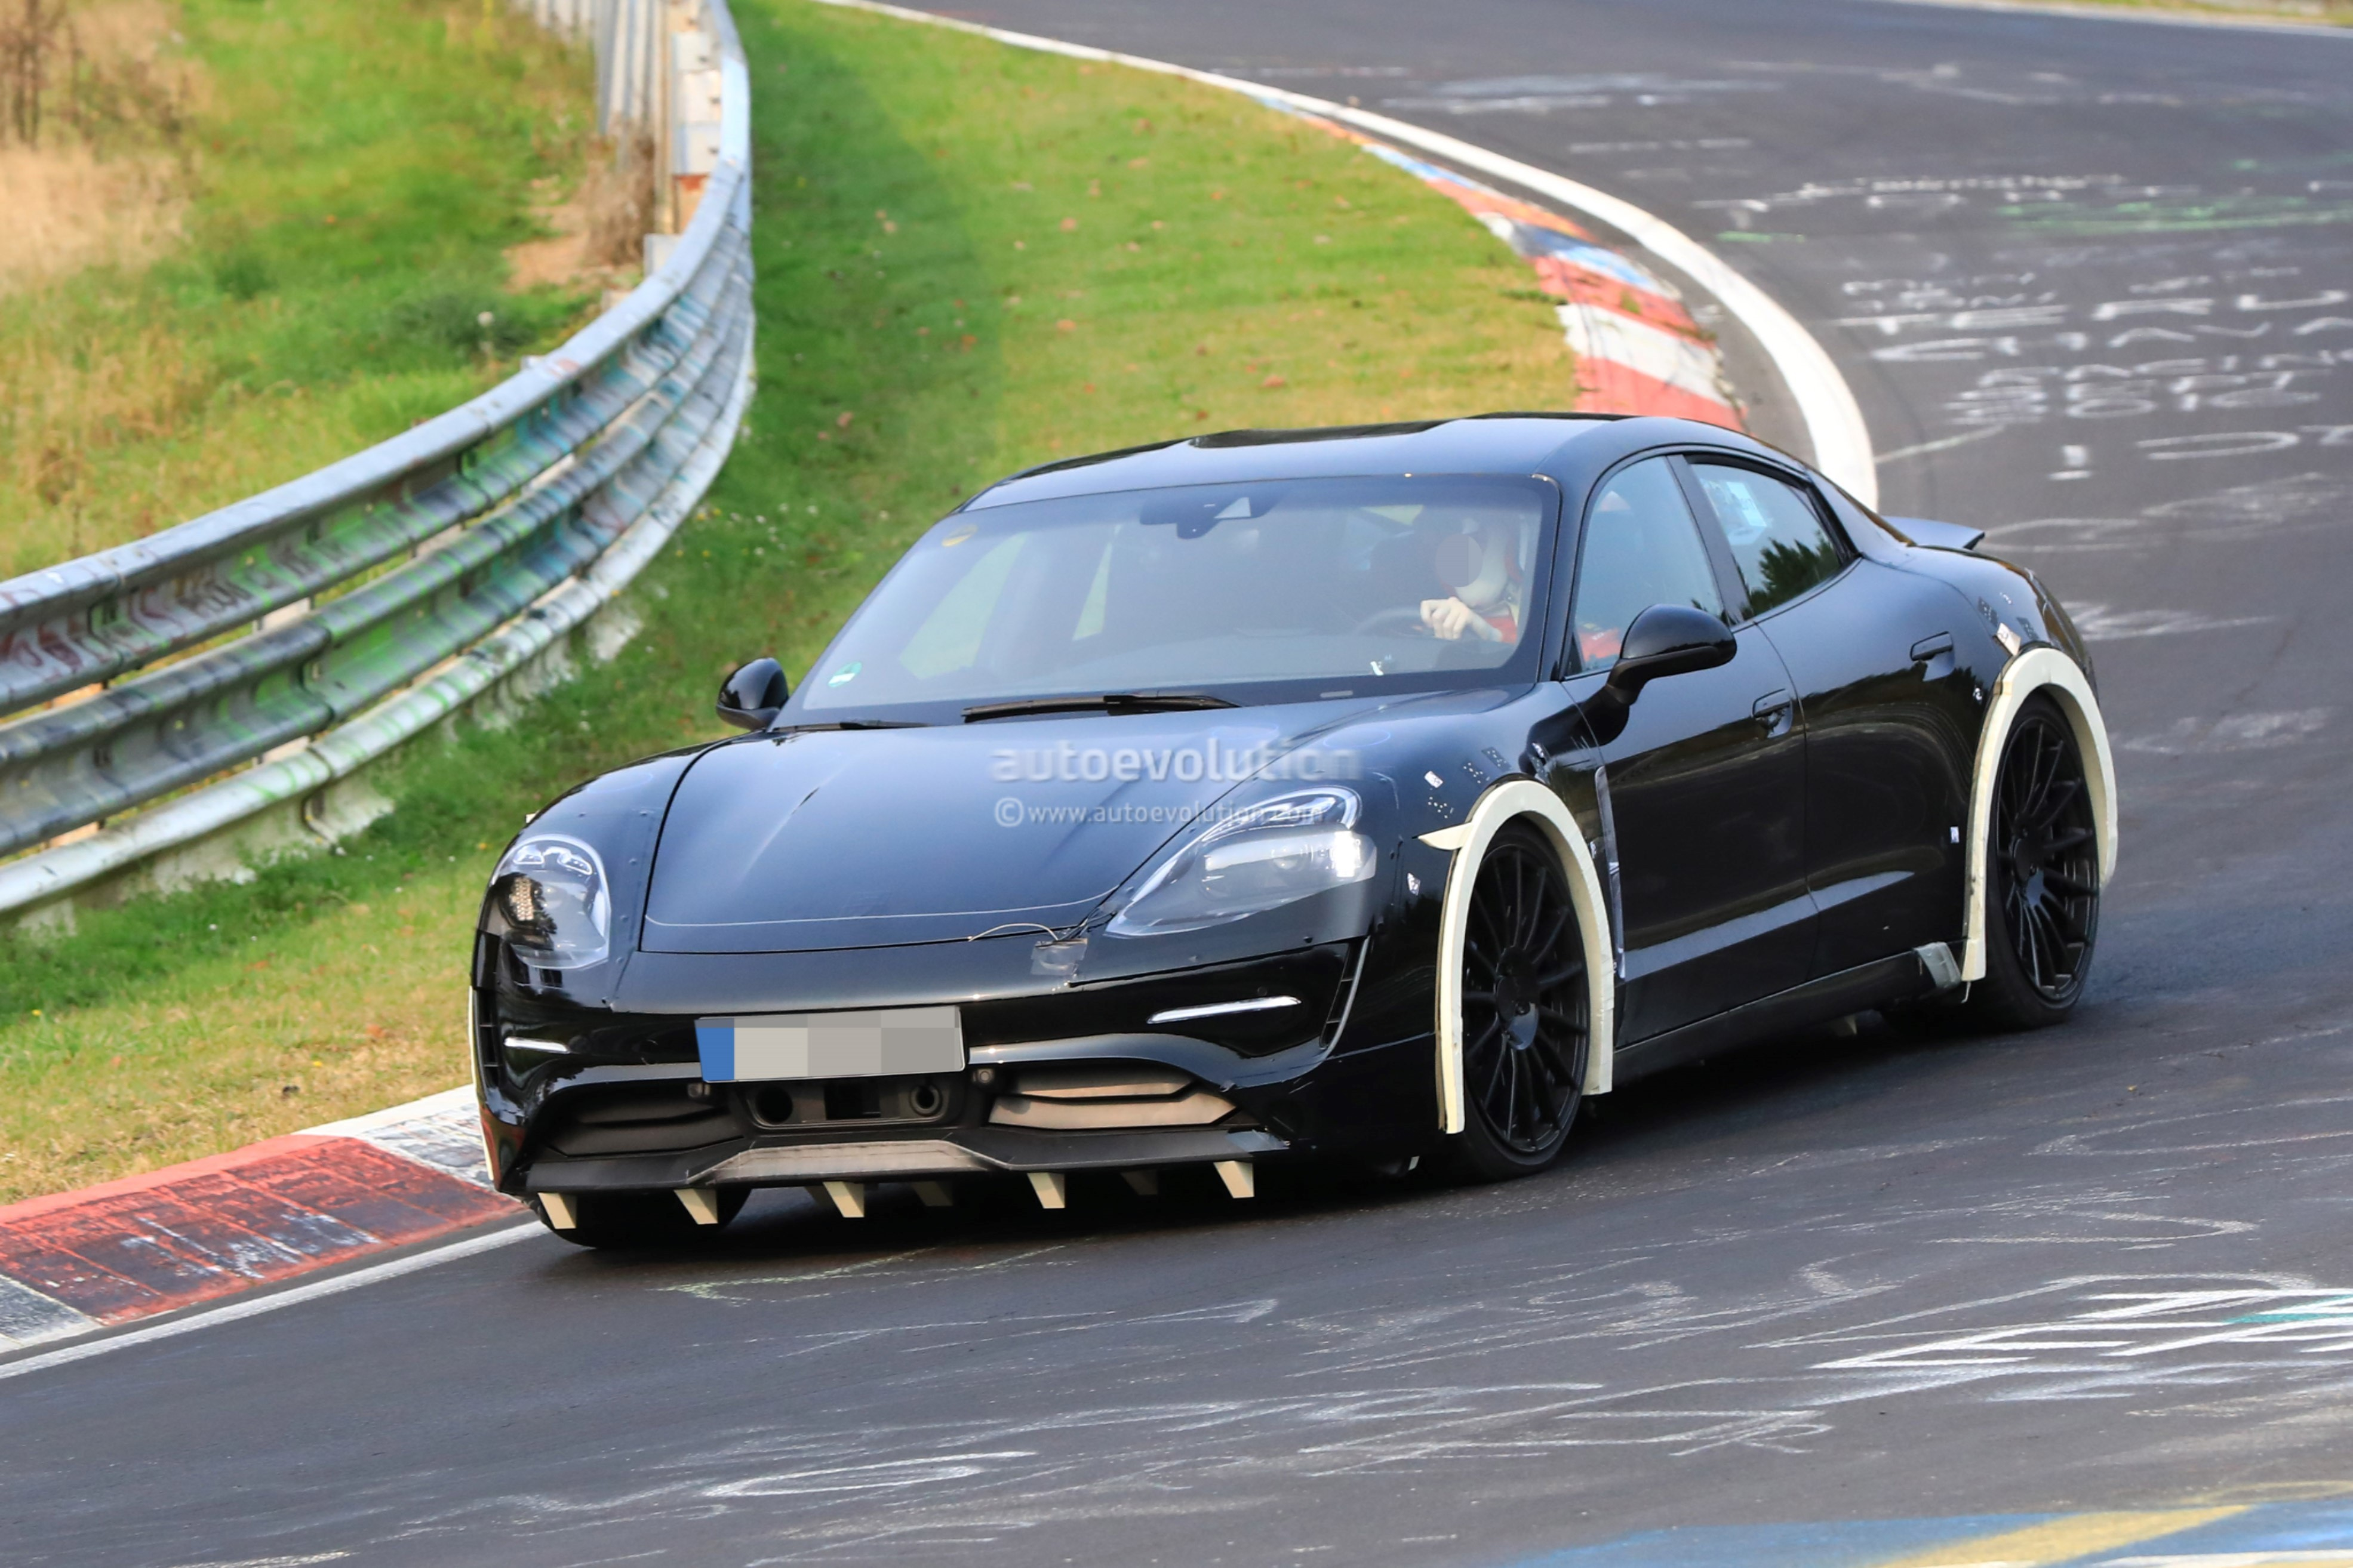 Kart Racing furthermore 1100594 2015 Formula One United States Grand Prix Preview furthermore Spyshots 2019 Porsche Mission E Electric Sports Sedan Tackles The Nurburgring 121120 together with 1951 Vintage Tractor Gets F1 Makeover In Bewildering Mashup Be es Tracktor 109386 additionally News12. on electric circuit formula